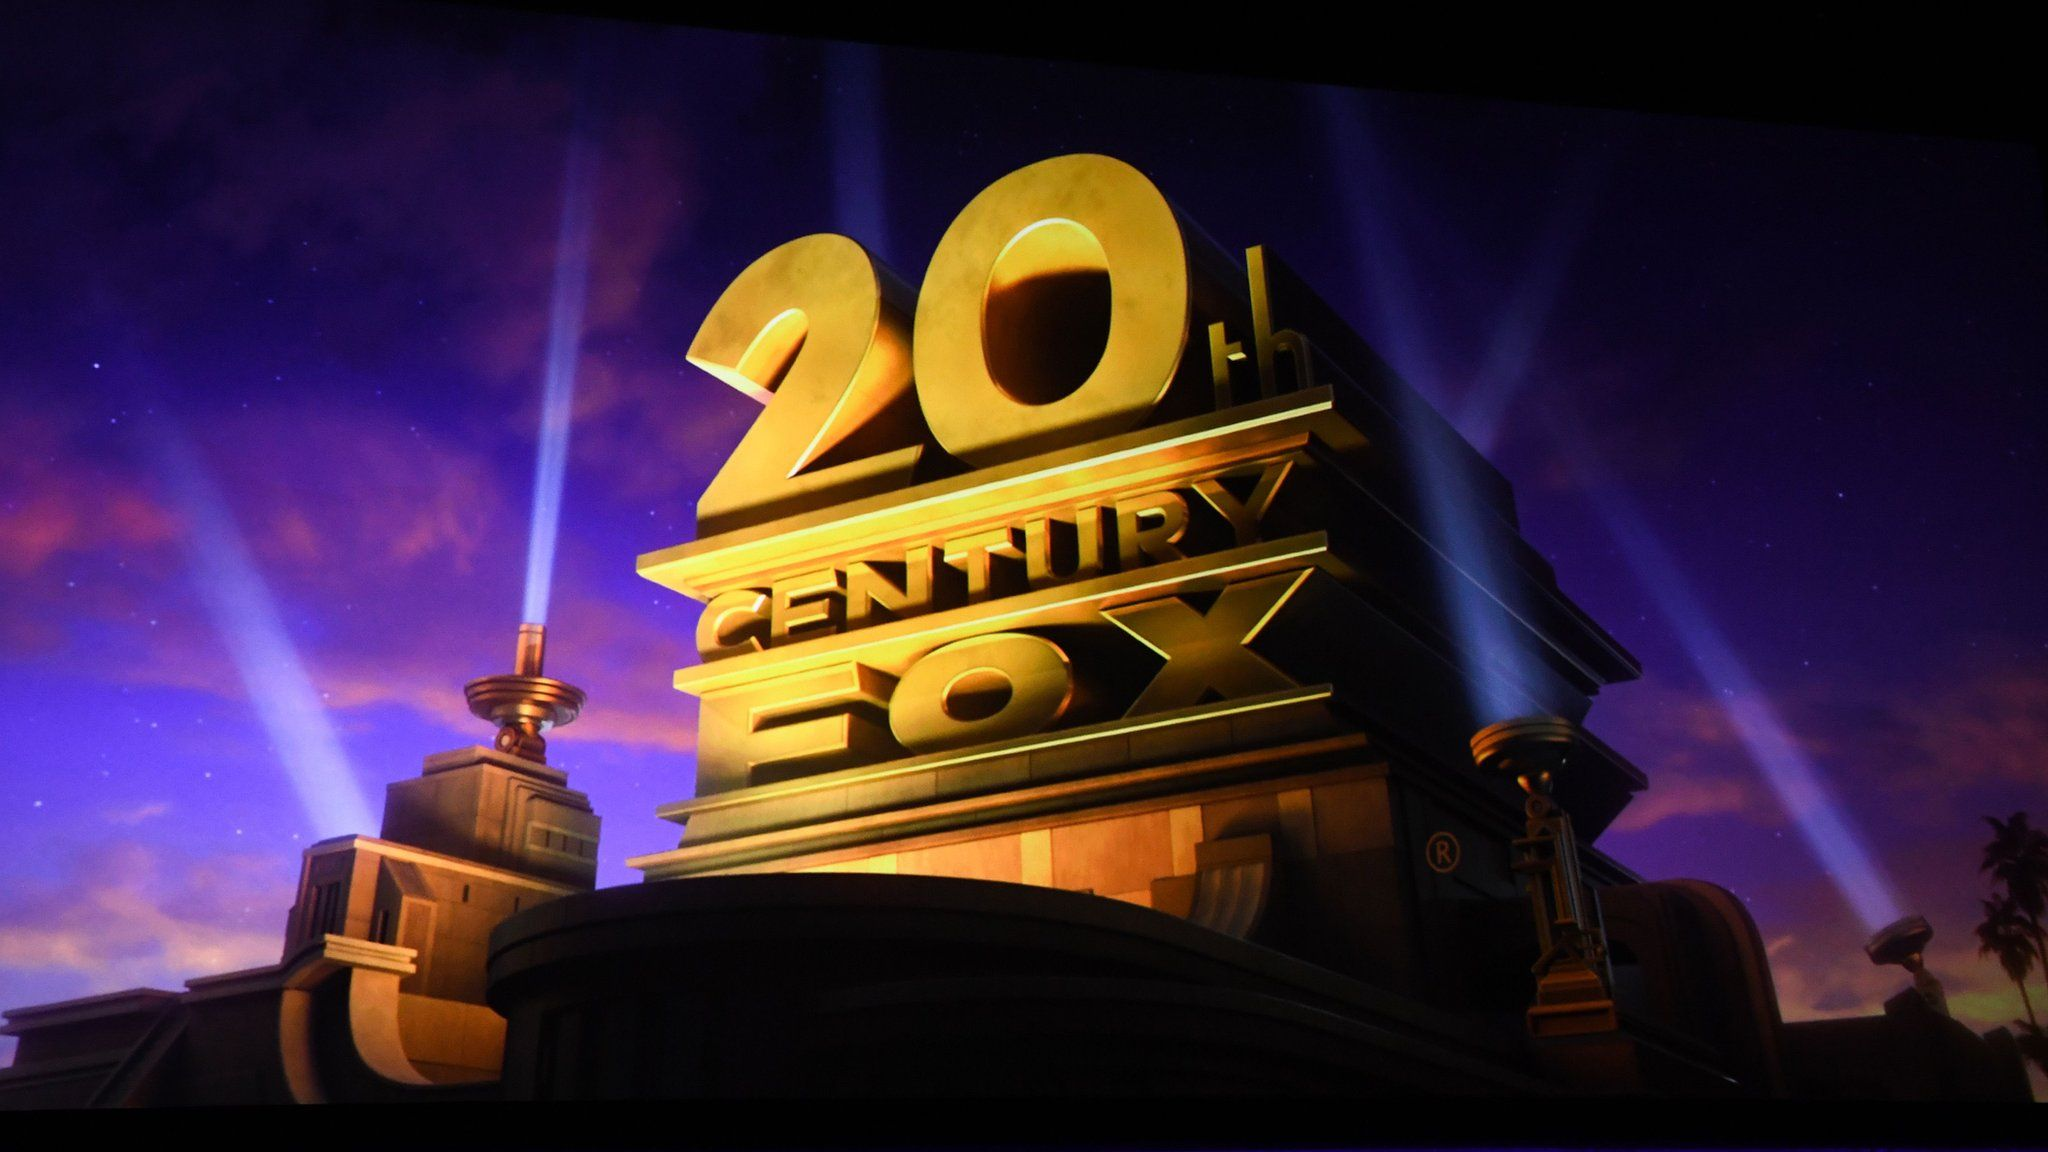 Disney ends the historic 20th Century Fox manufacturer